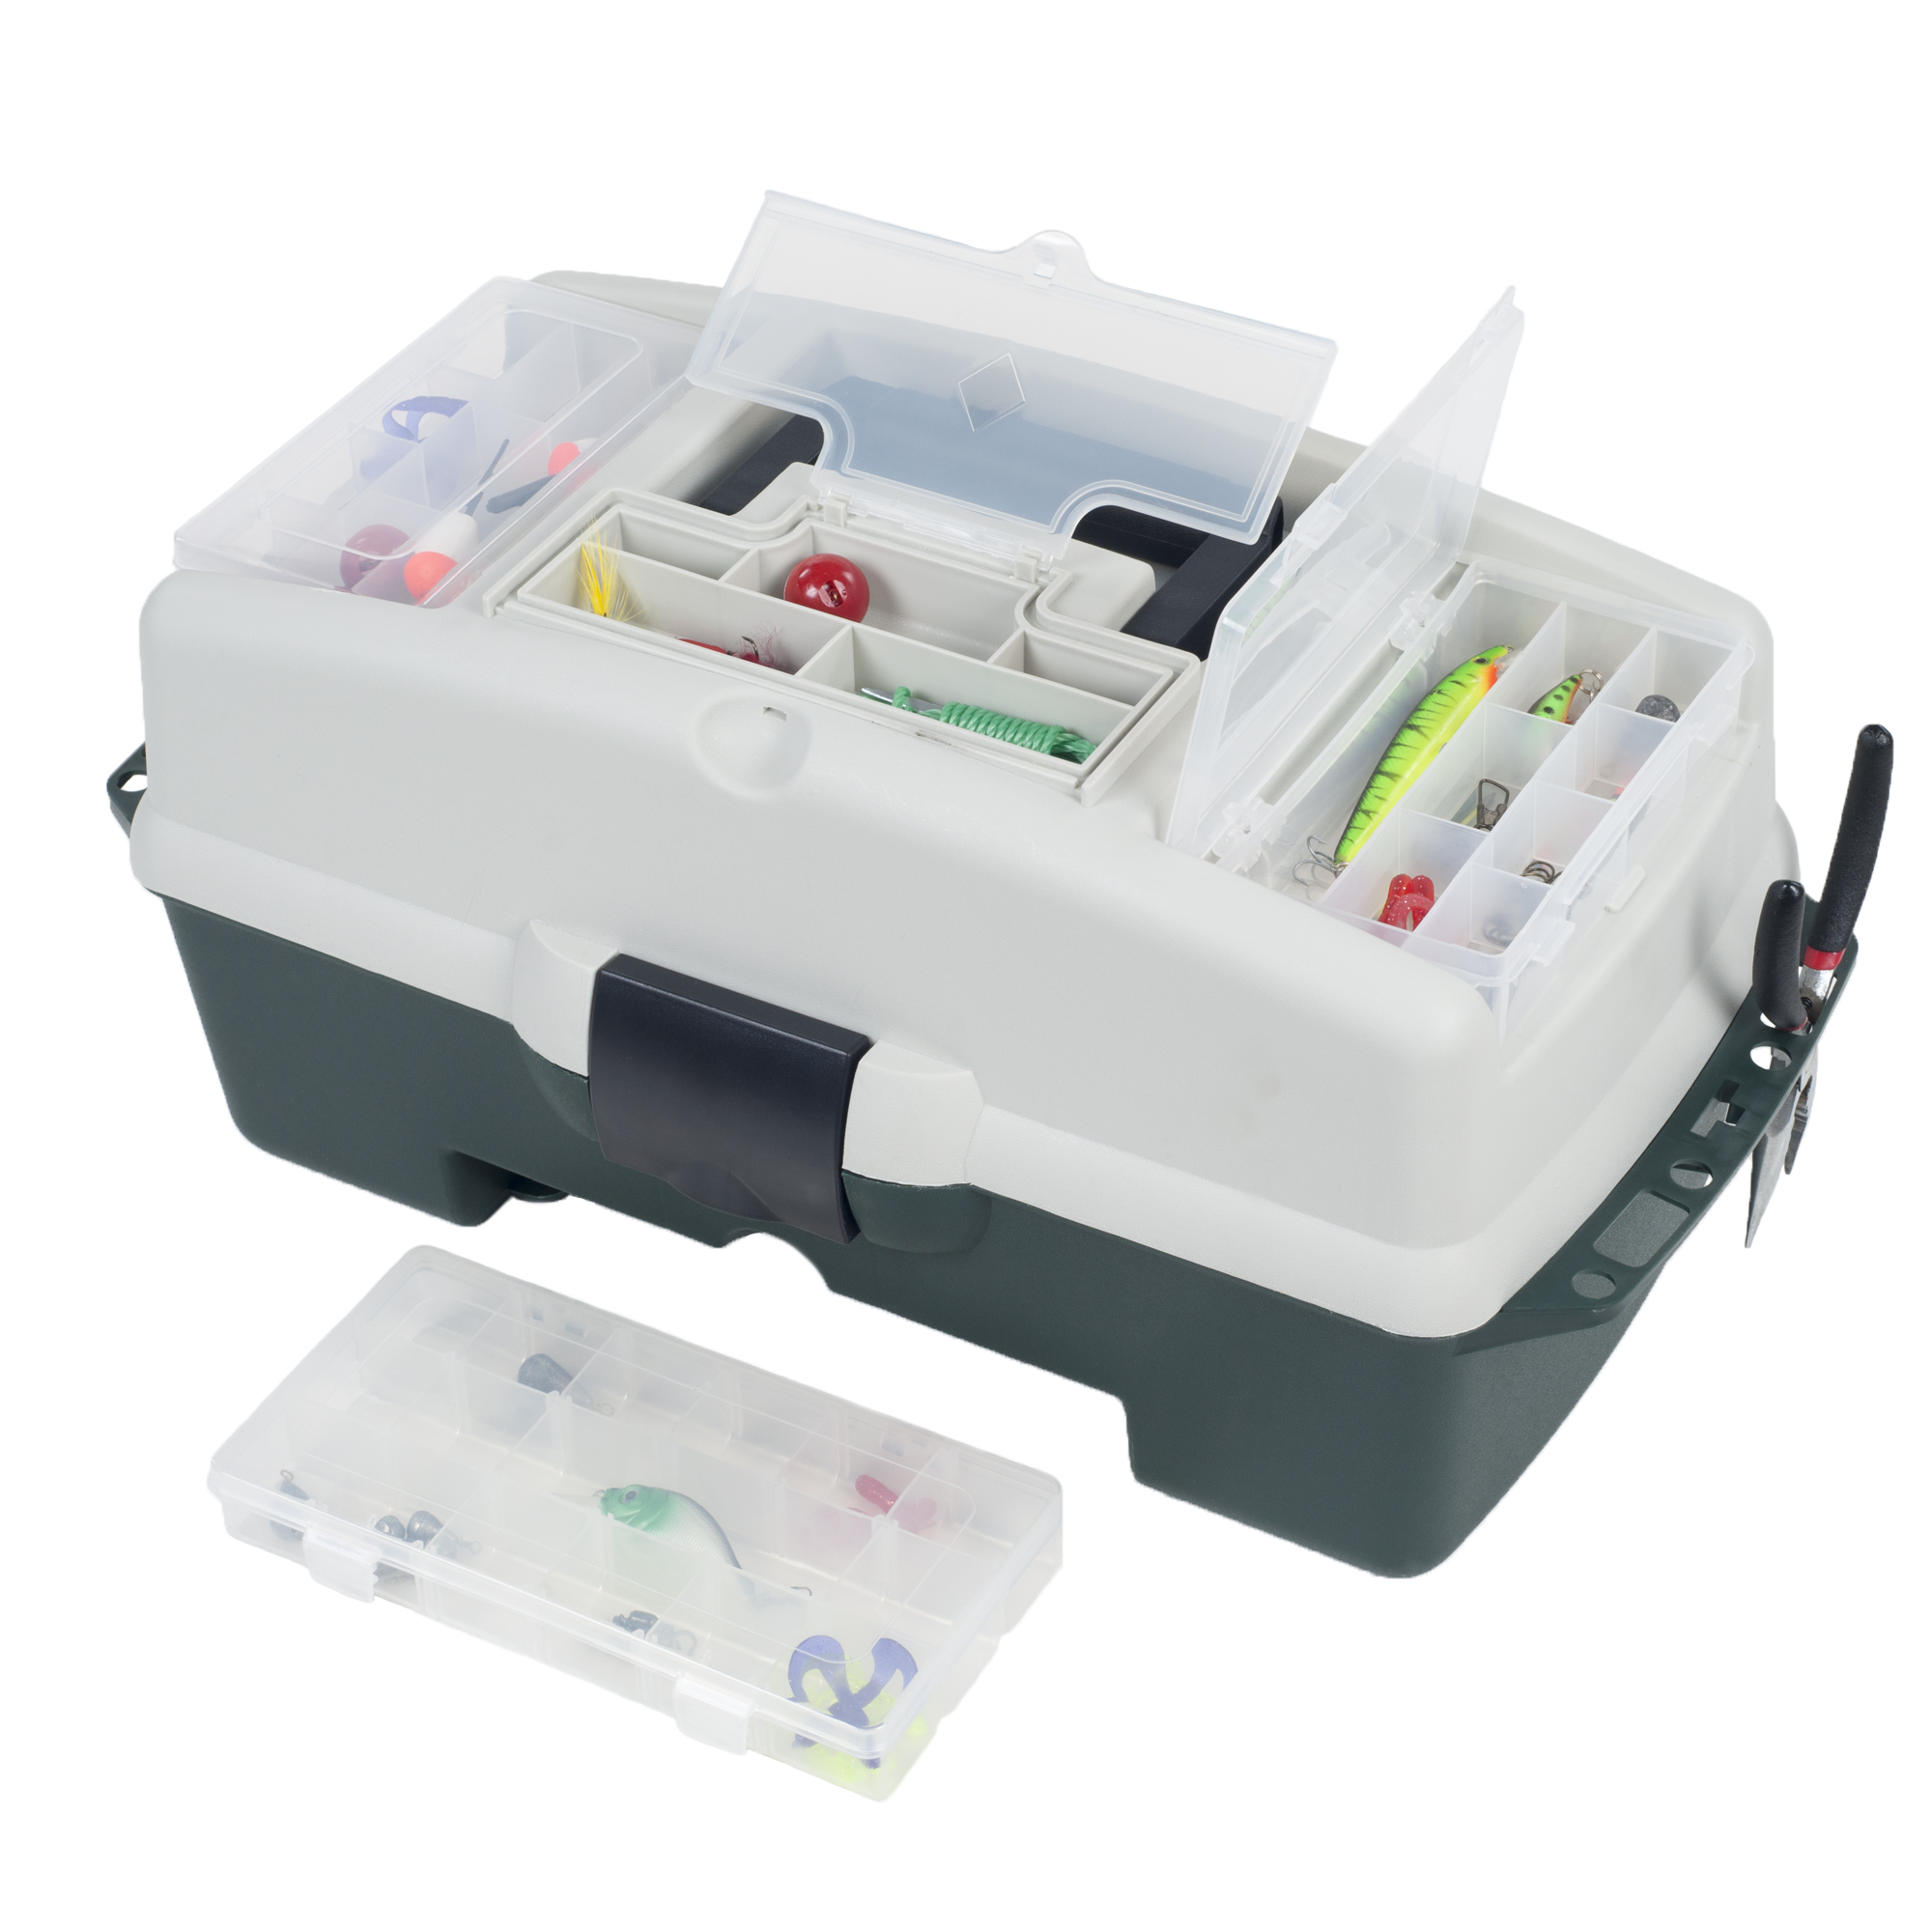 2-Tray Fishing Tackle Box Craft Tool Chest and Art Supply Organizer with Lid Storage and 3 Removable Front Organizers �... by Trademark Global LLC